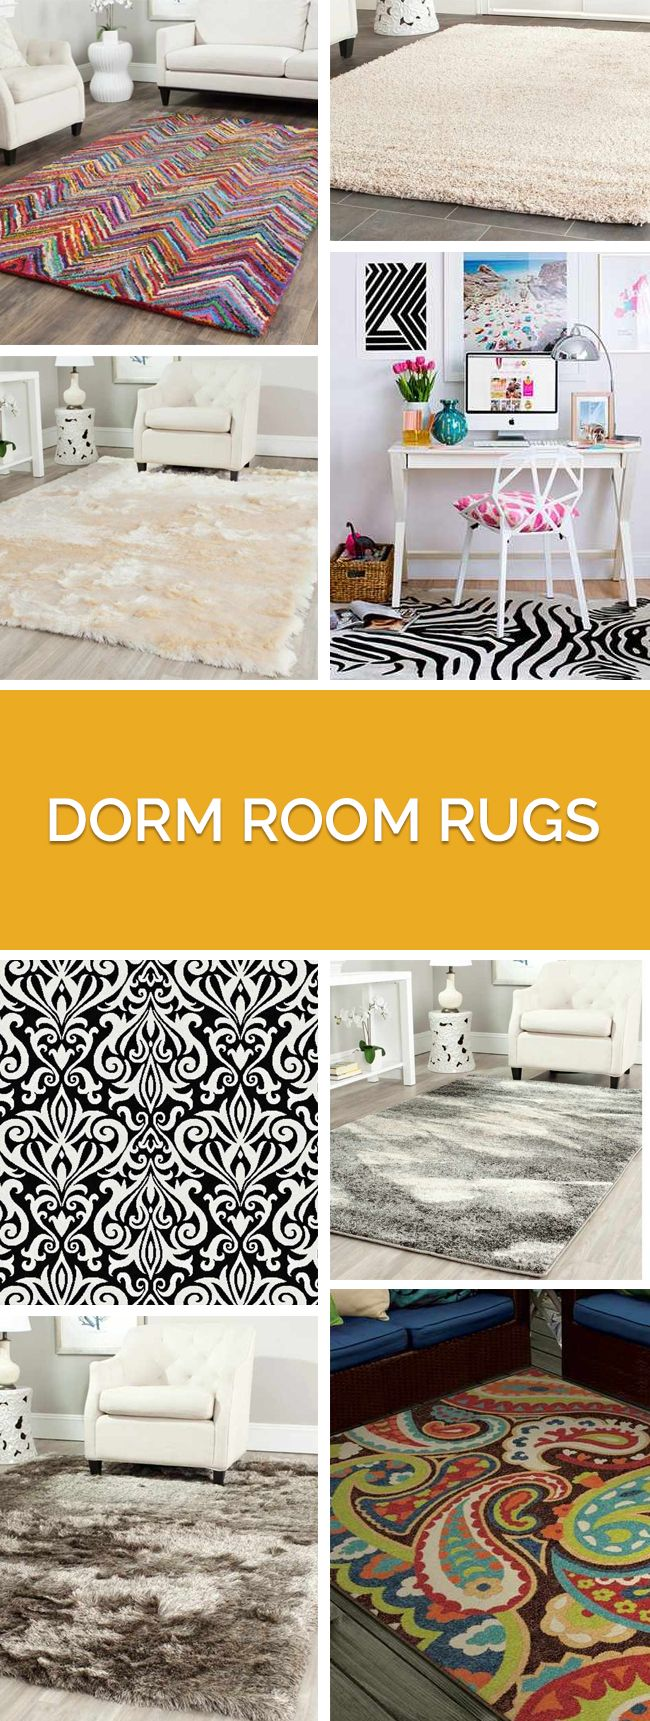 Dorm room rugs that fit every budget! Chic styles and colors to fit every room palette.